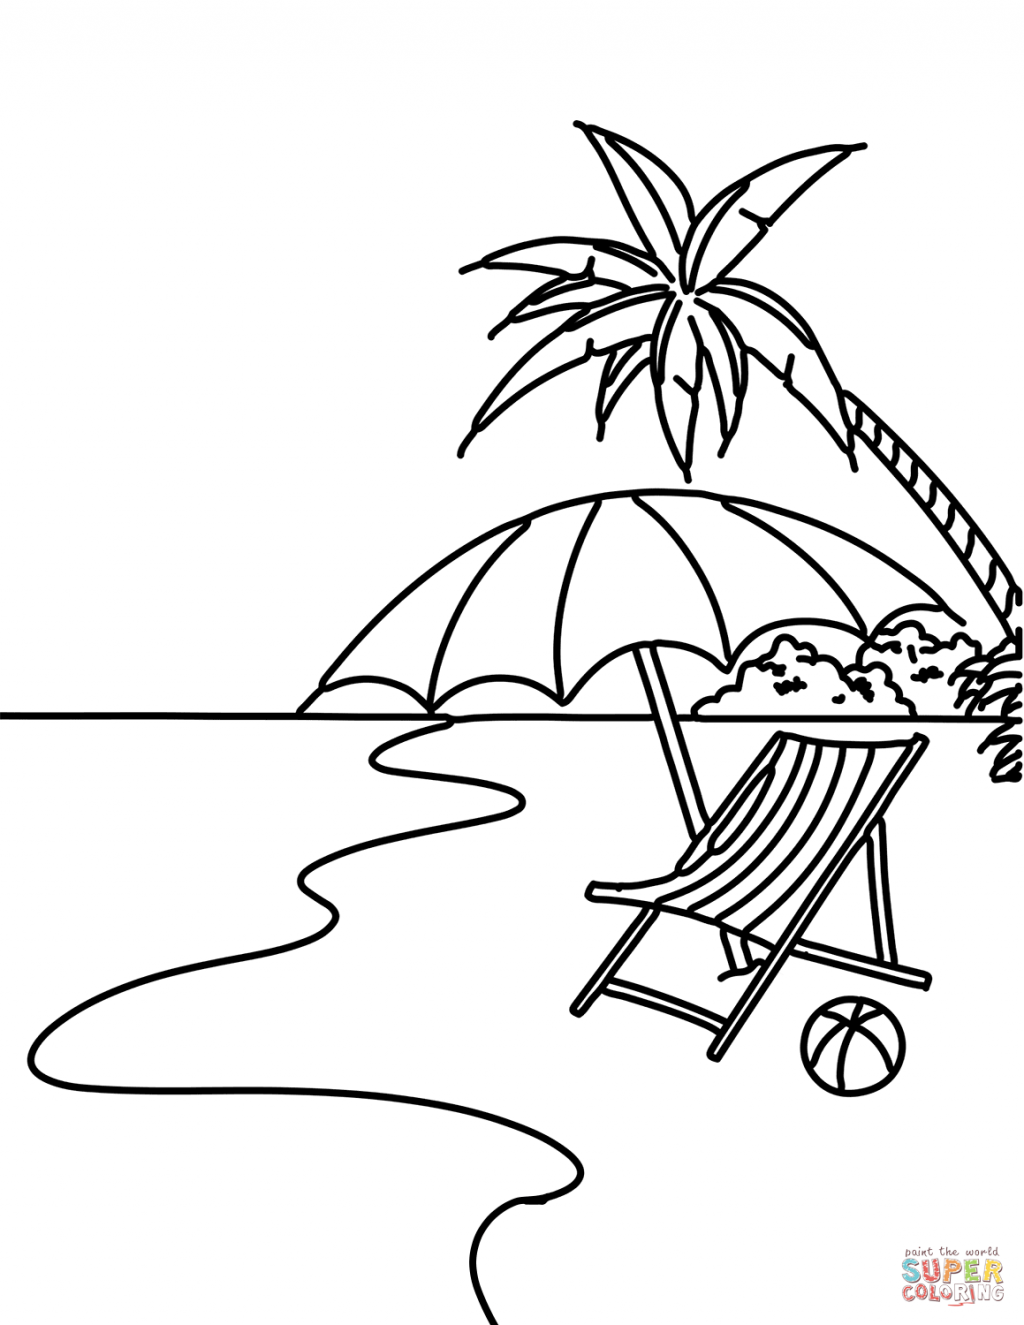 beach sunset coloring pages coloring ocean pages scenes 2020 в 2020 г Рисунки sunset coloring beach pages